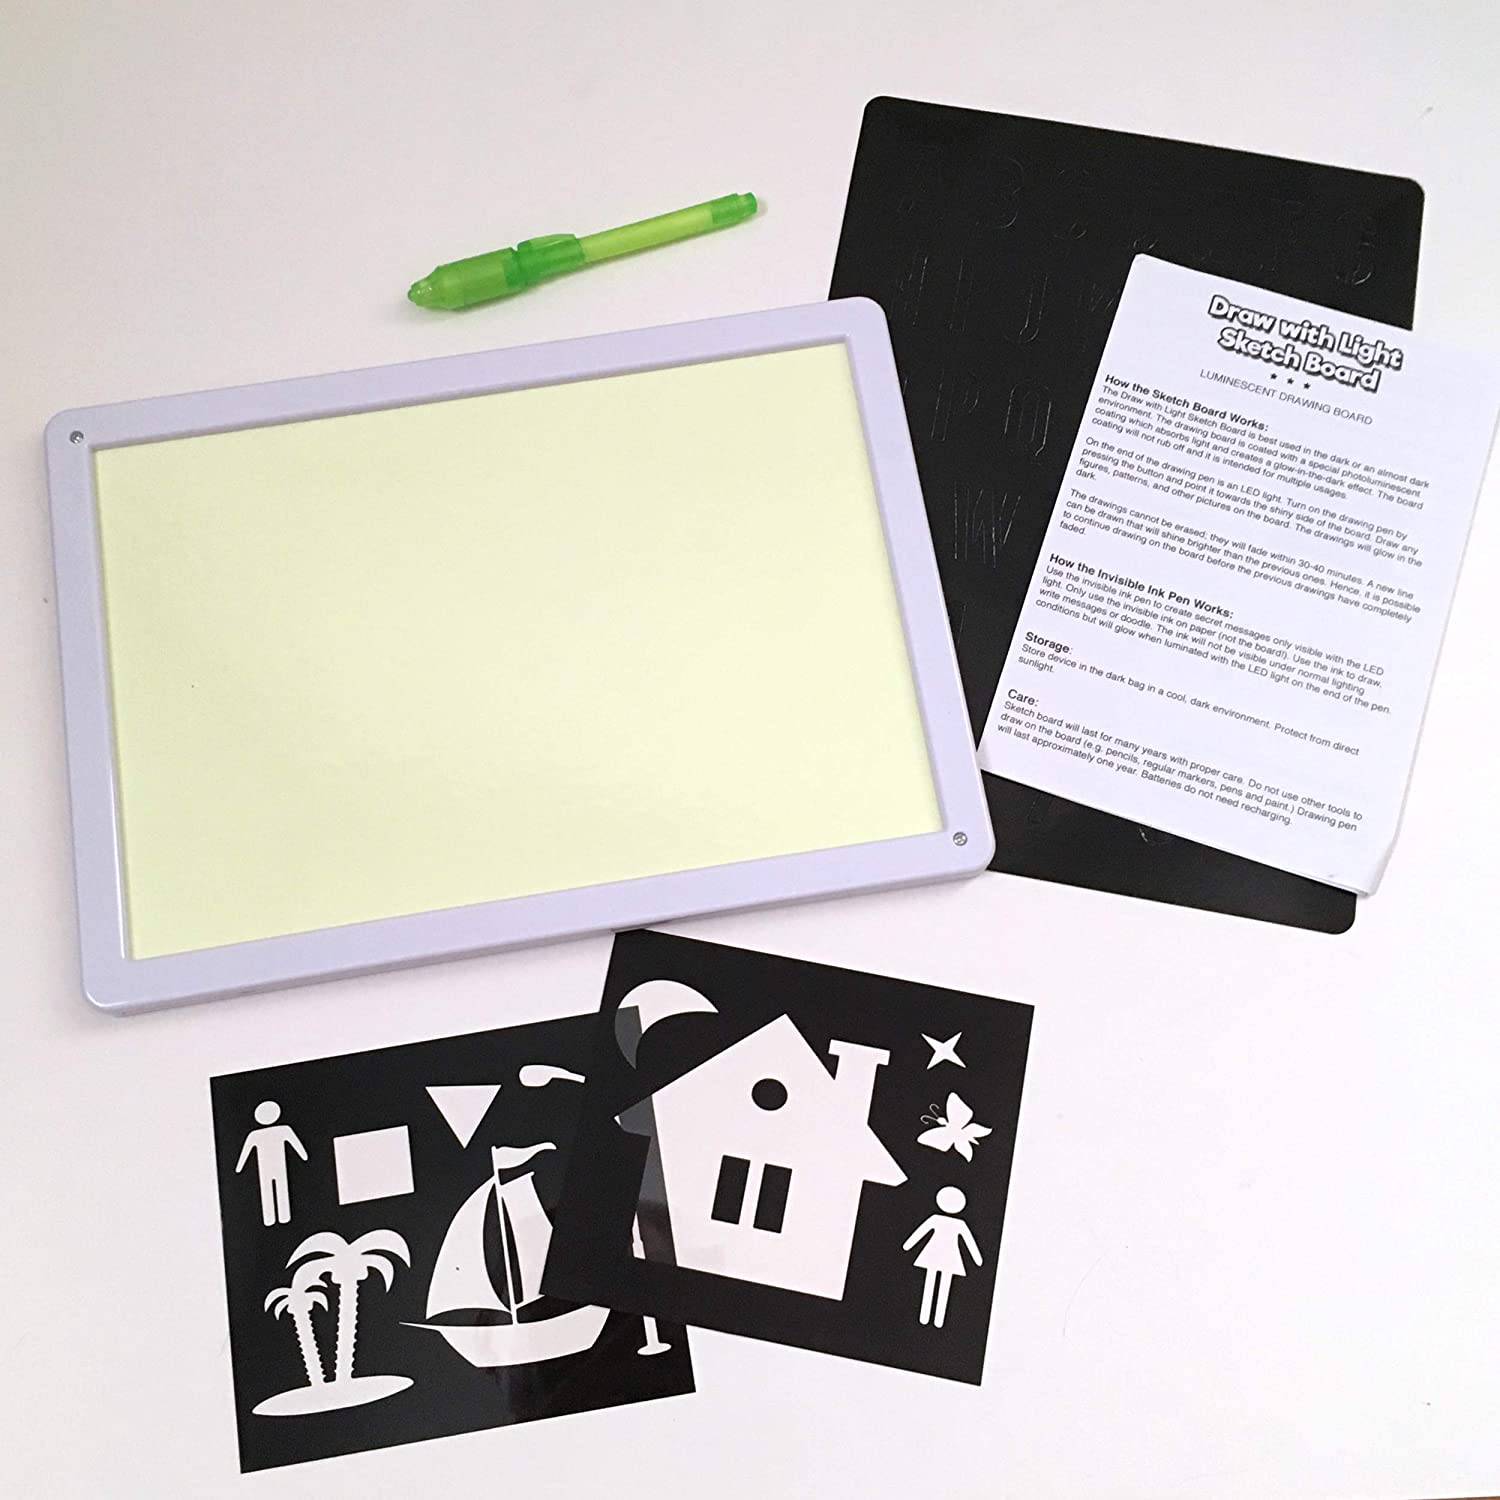 Luminescent Glow in The Dark Drawing Painting for Kids Zen Life Draw with Light Sketch Board